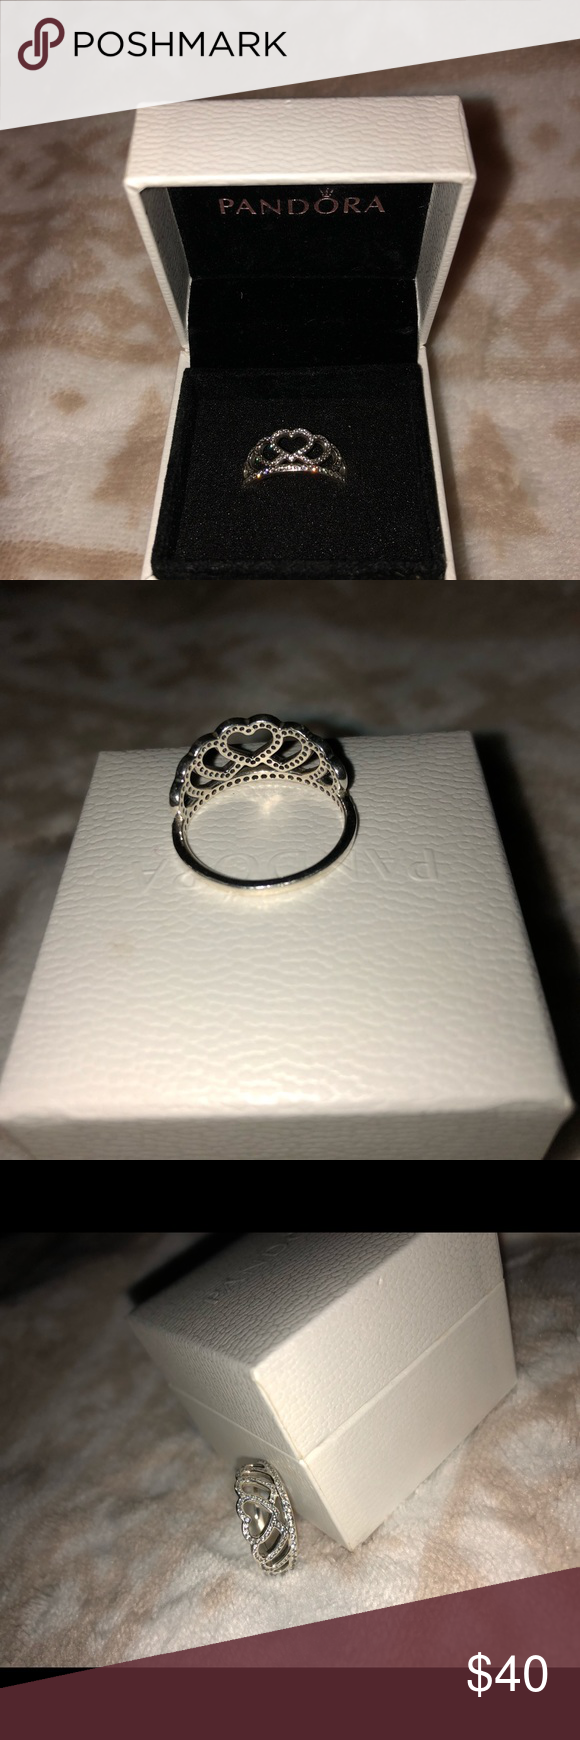 aeb4fbb9ee6 Pandora Hearts Tiara Ring Size 7; The pandora hearts tiara ring is part of  the pandora princess collection. slightly worn but good condition. 92.5%  silver ...